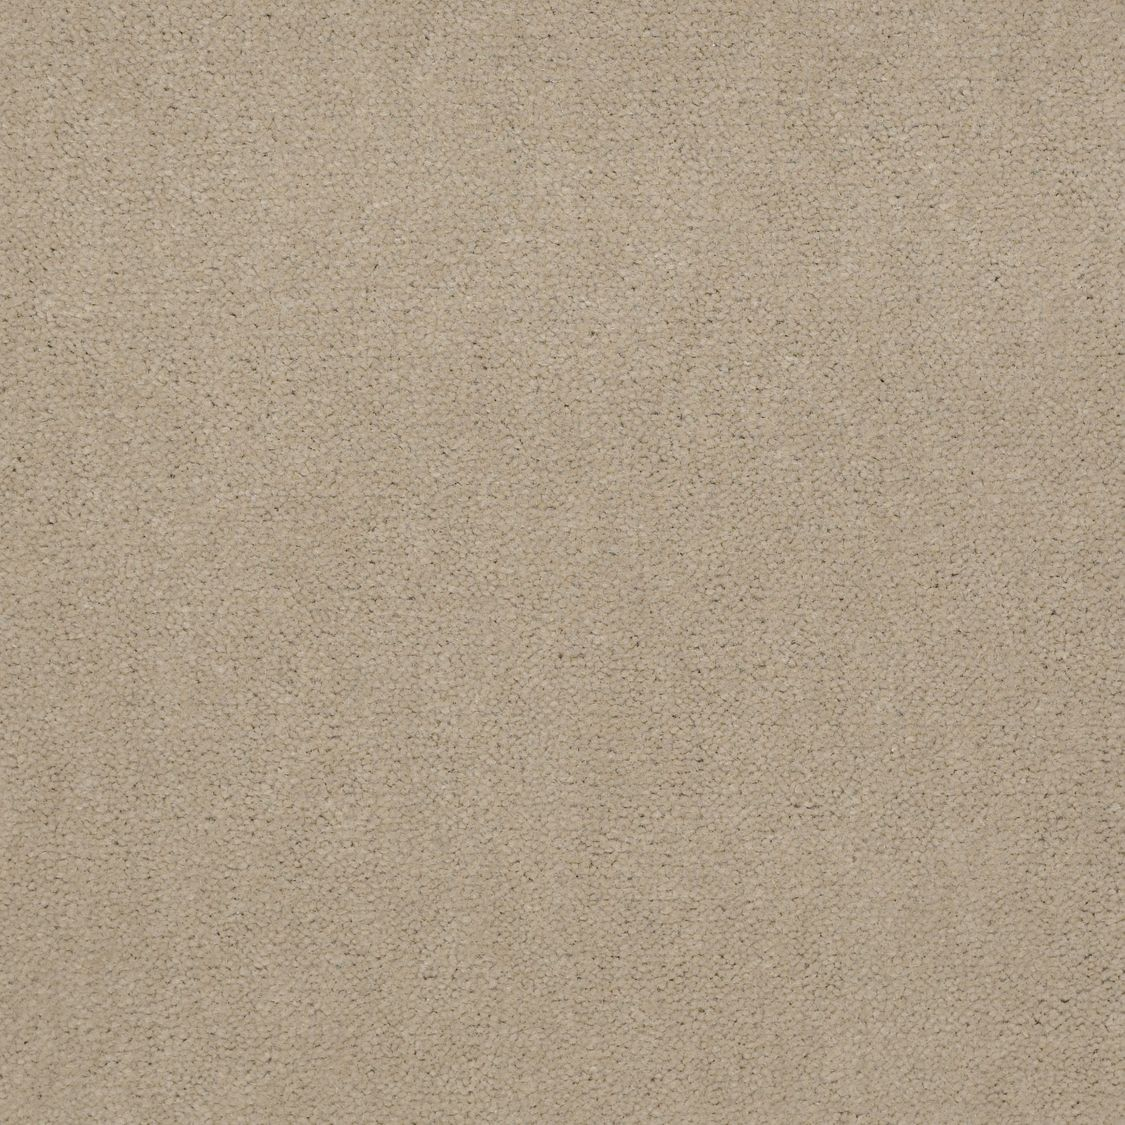 Windswept ClassicBac® I0200, Color Beach 00100, Patcraft Residential Carpet